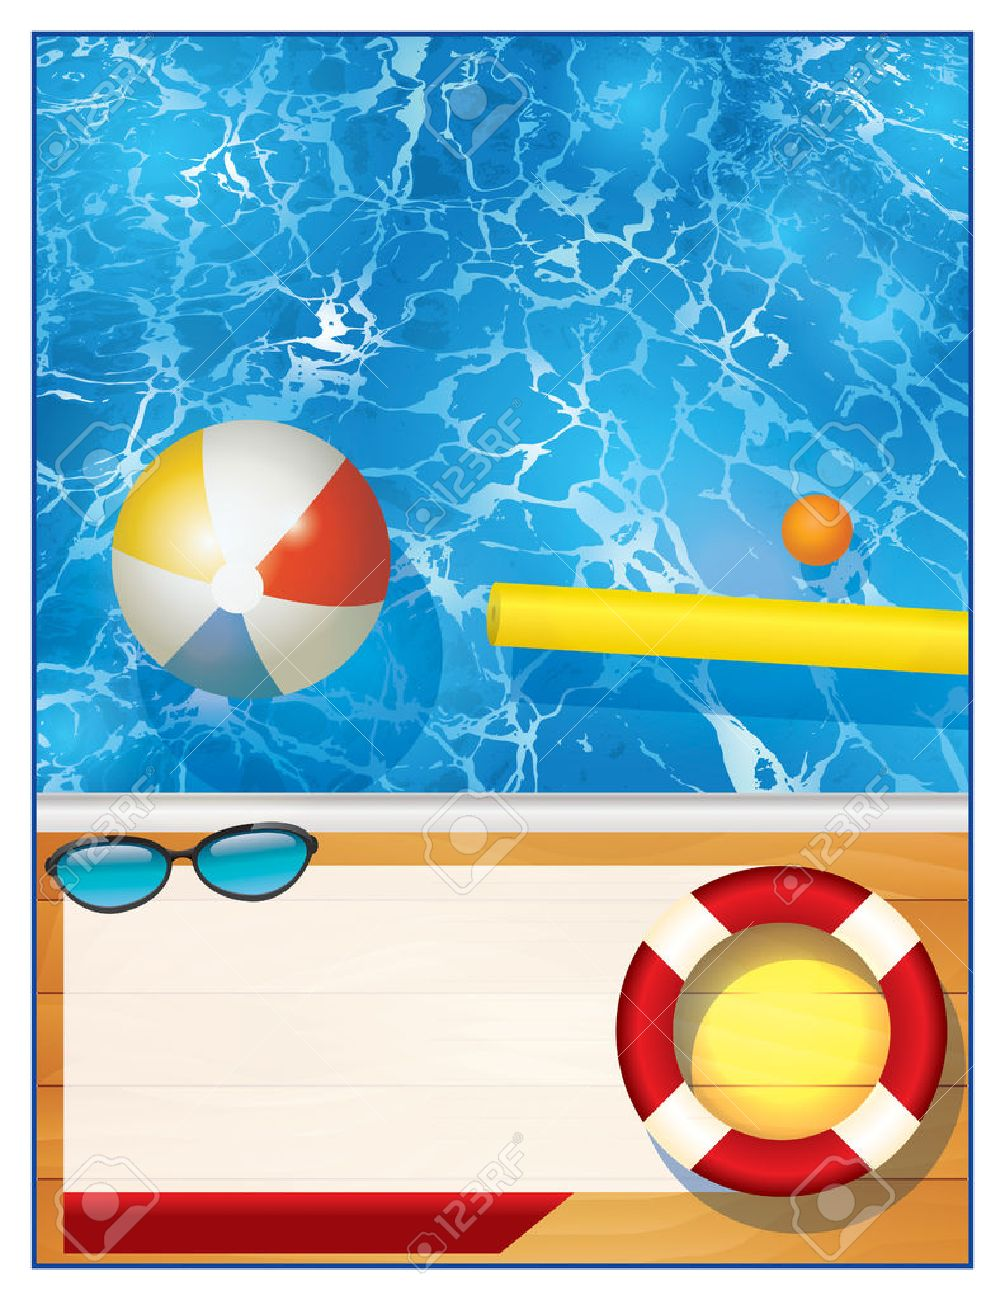 A blank swimming pool background with room for copy for a party invitation or special event. Vector EPS 10 available. - 57113293